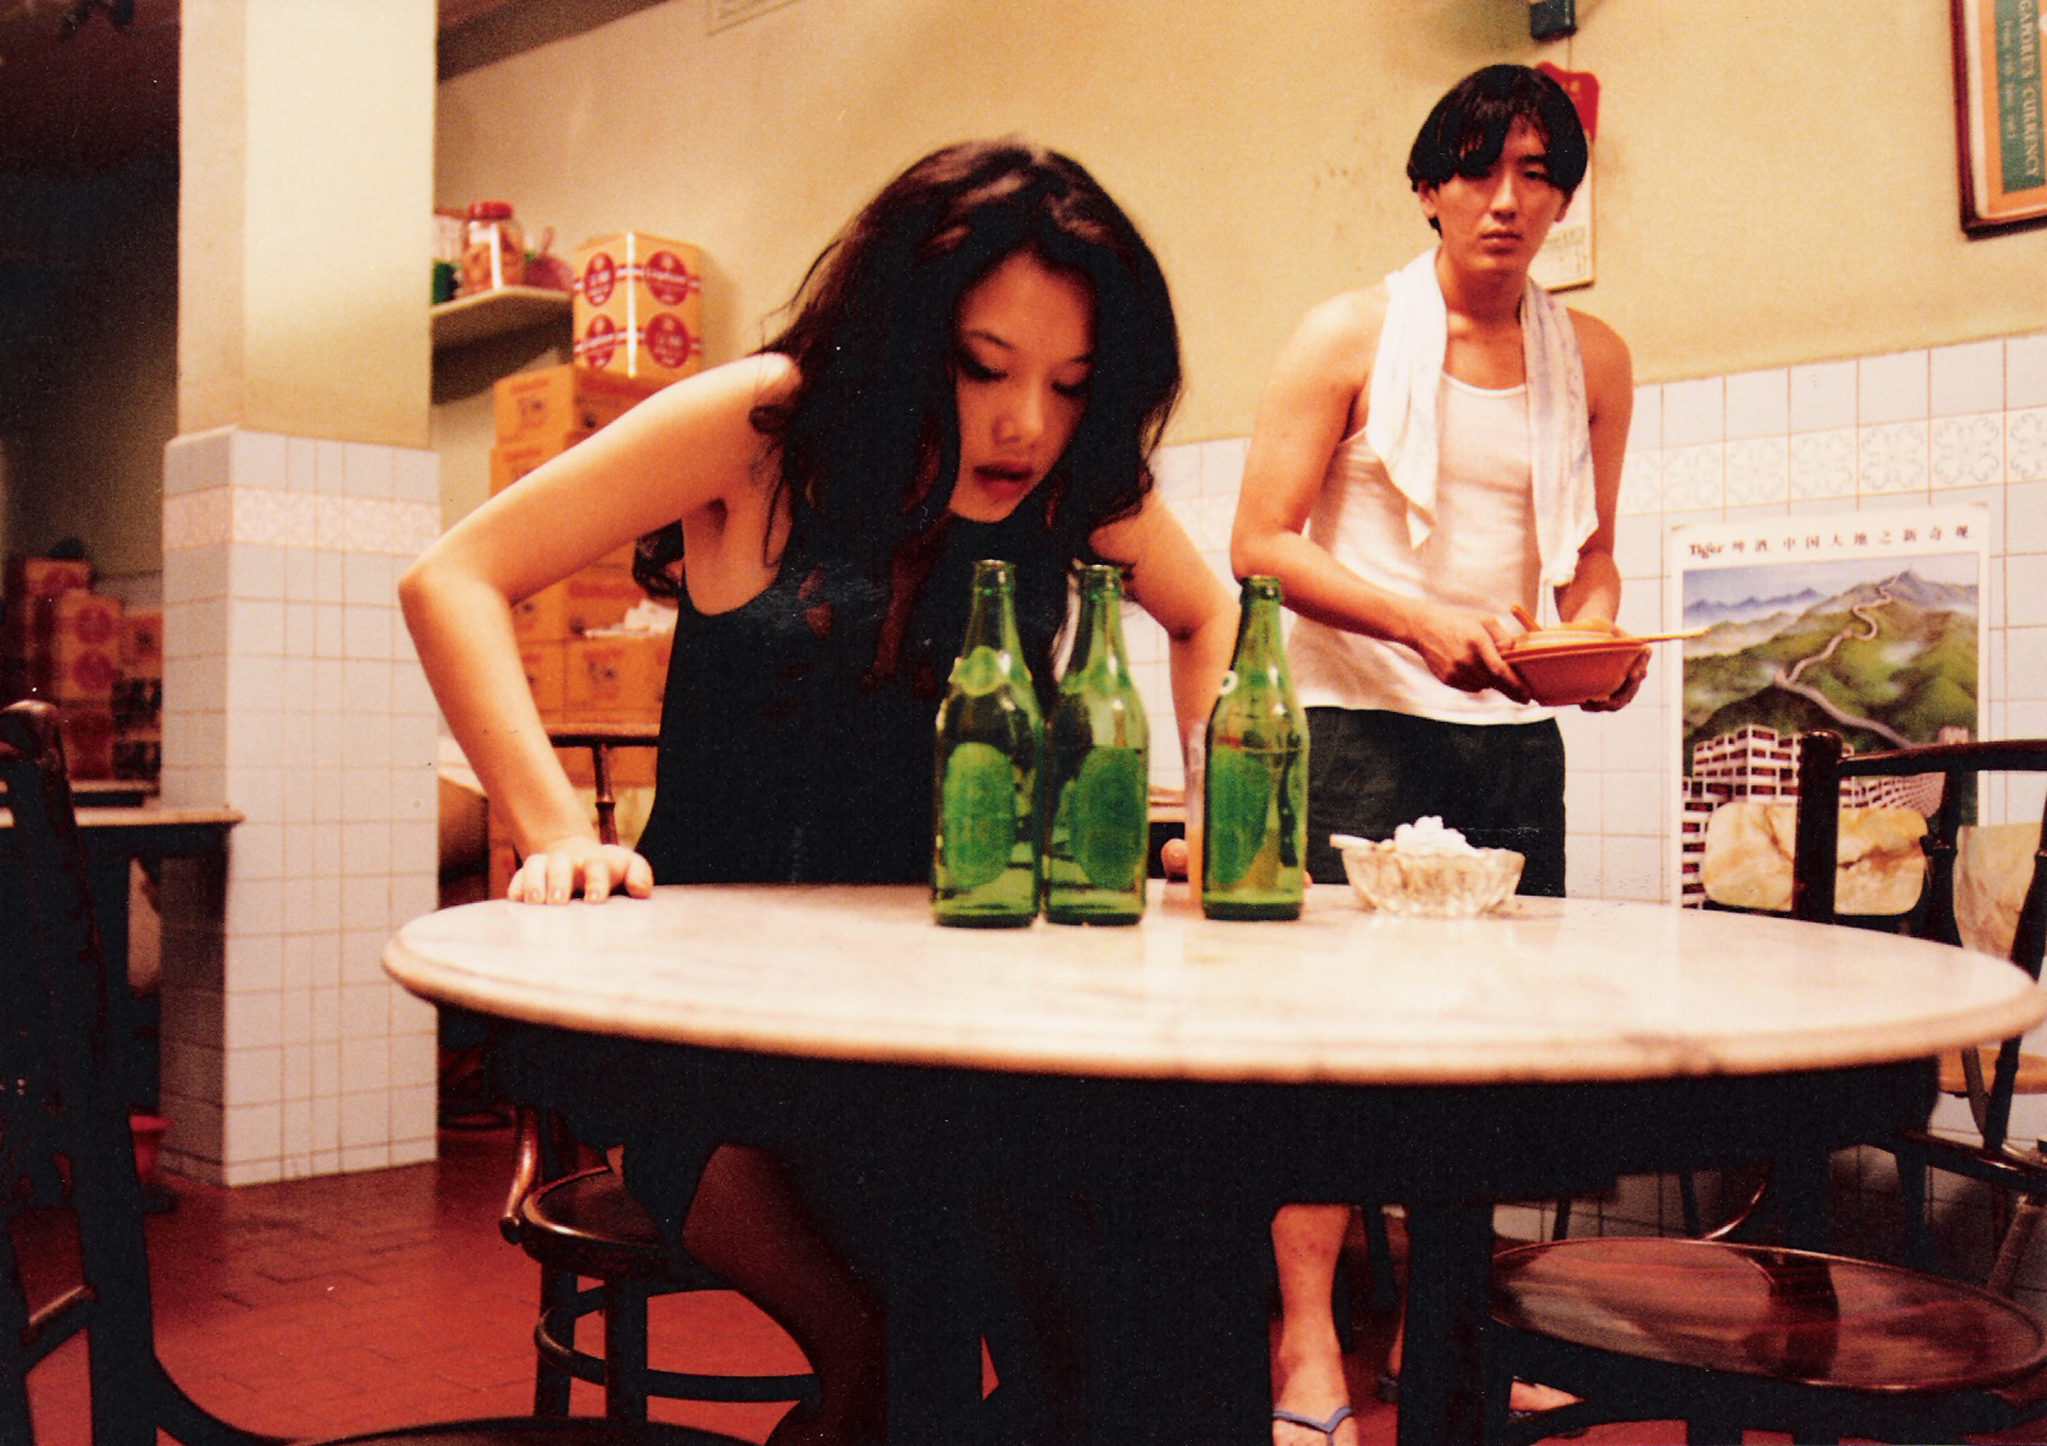 Cinema still: Mee Pok Man starring Michelle Goh and Joe Ng##########x##########